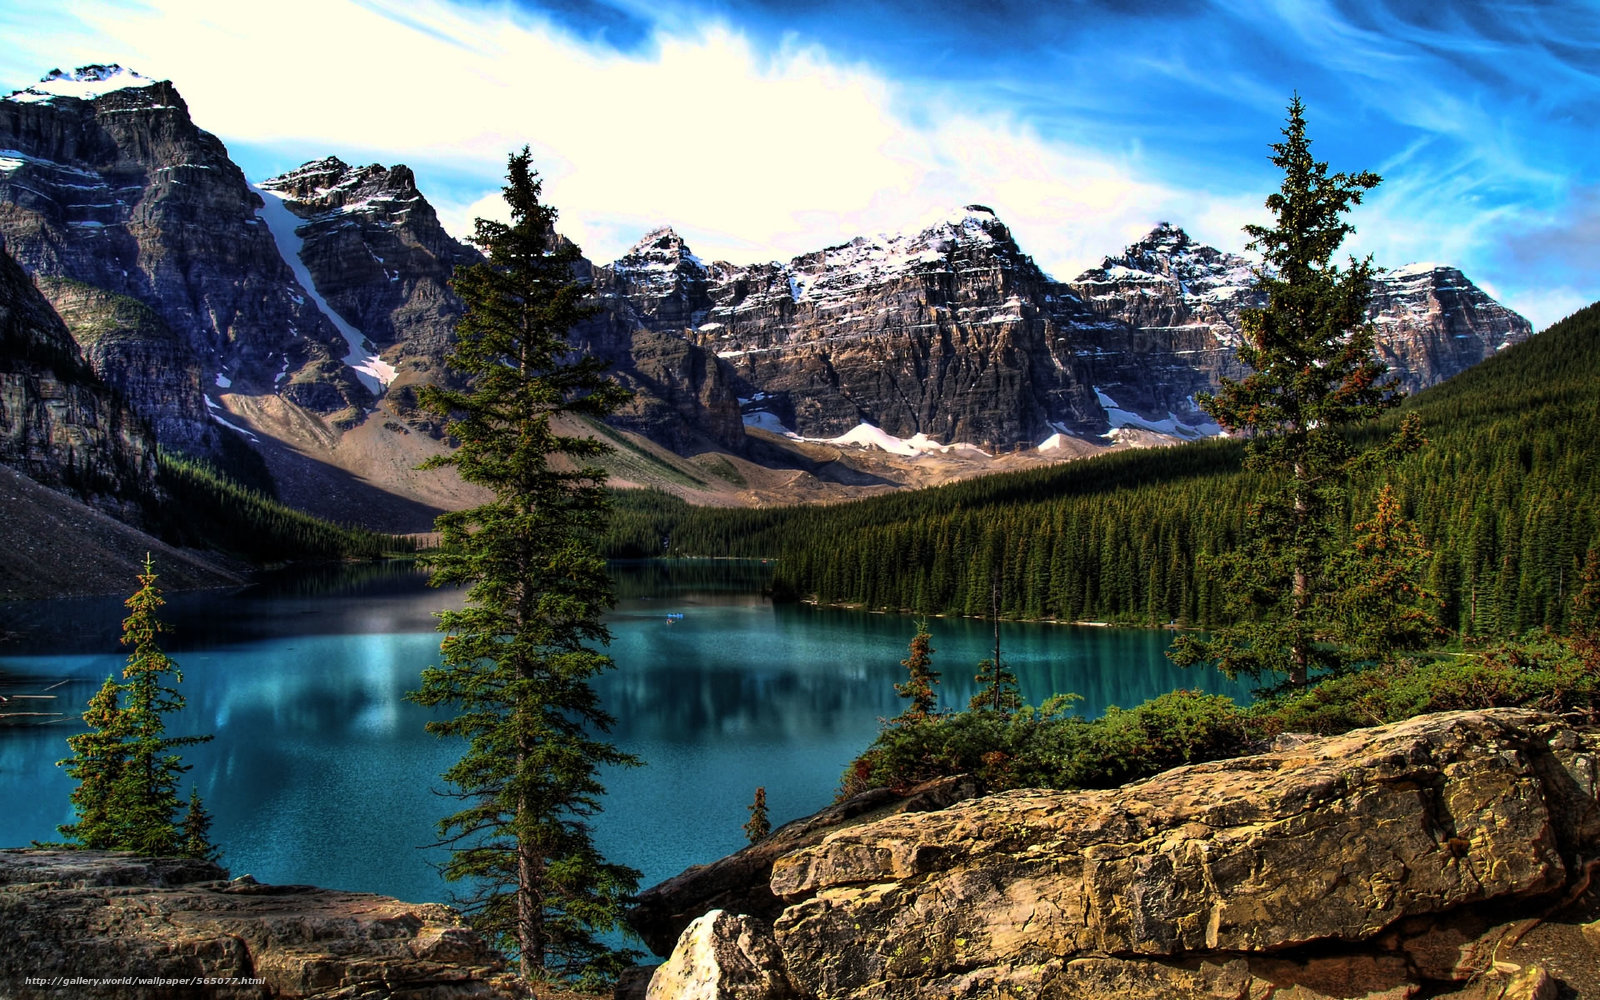 Moraine lake banff national park озеро горы пейзаж